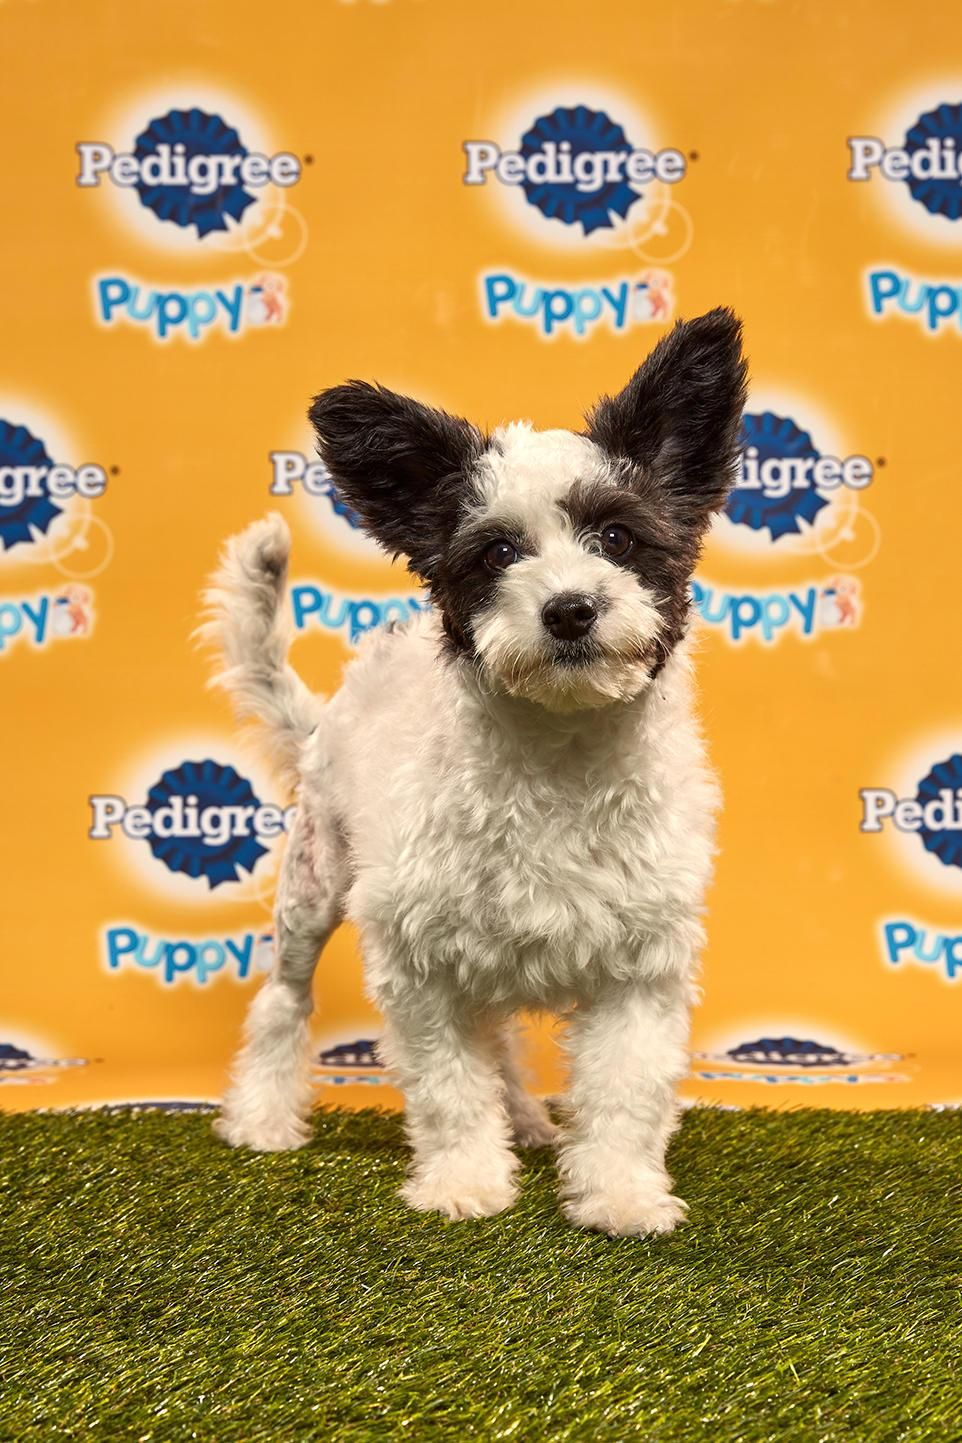 Puppy Bowl 2020 Photos Puppies, Puppy play, Treeing